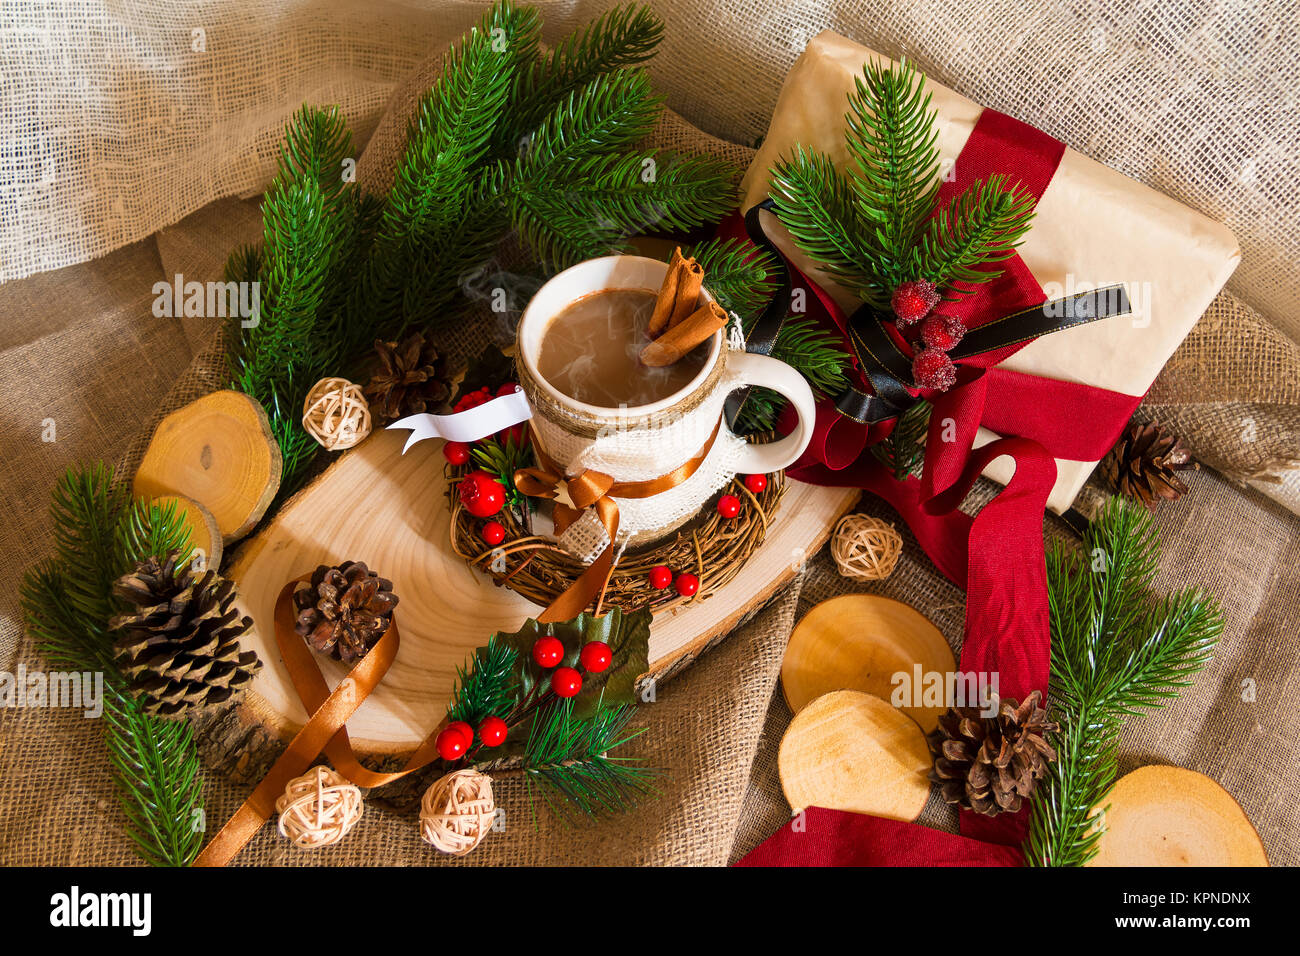 New Year's still life with a cup of coffee, a gift box and pine branches - Stock Image